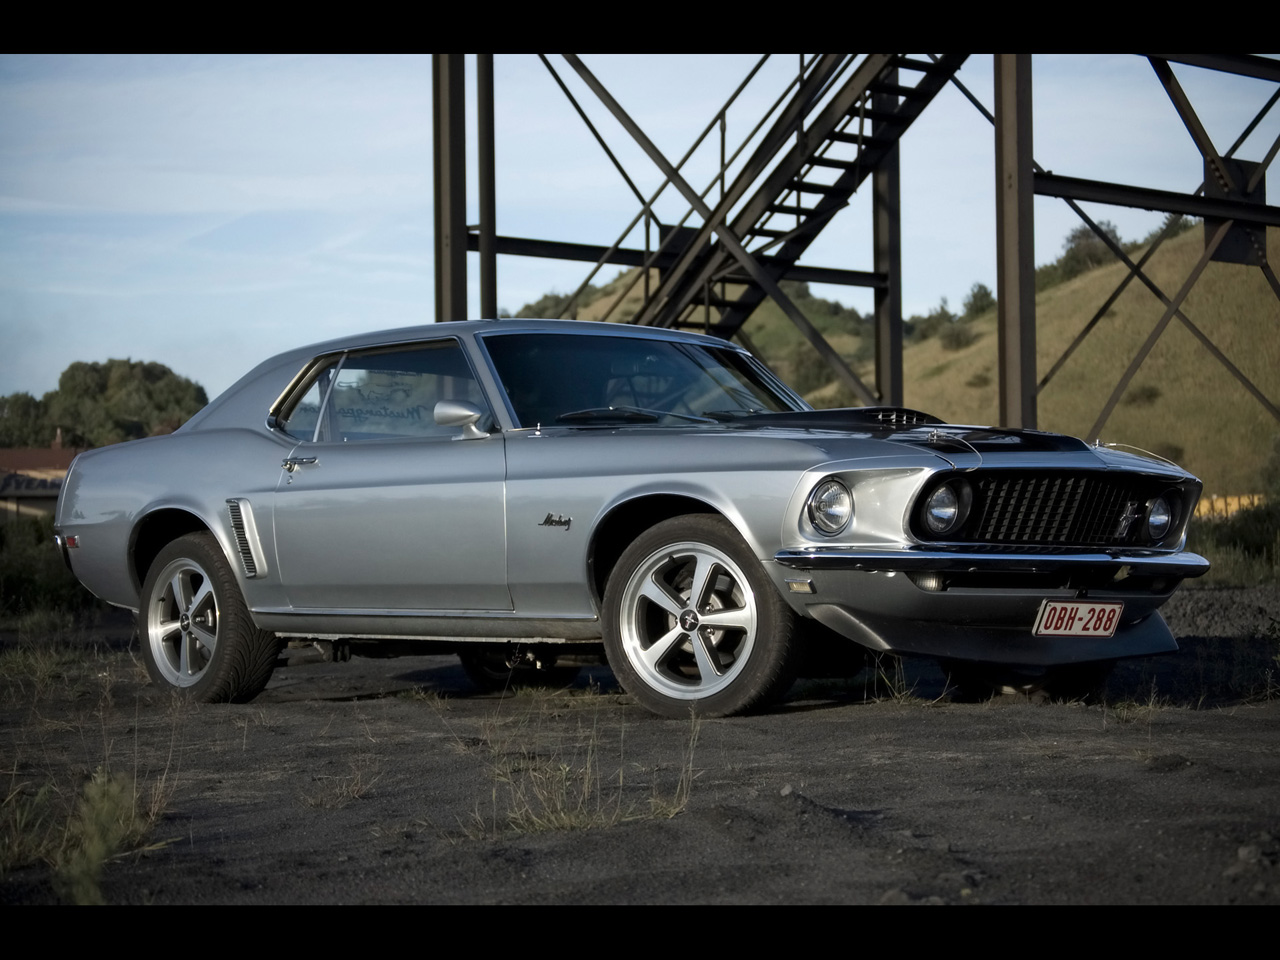 1969 Ford Mustang Hardtop   Side Angle   1280x960   Wallpaper 1280x960